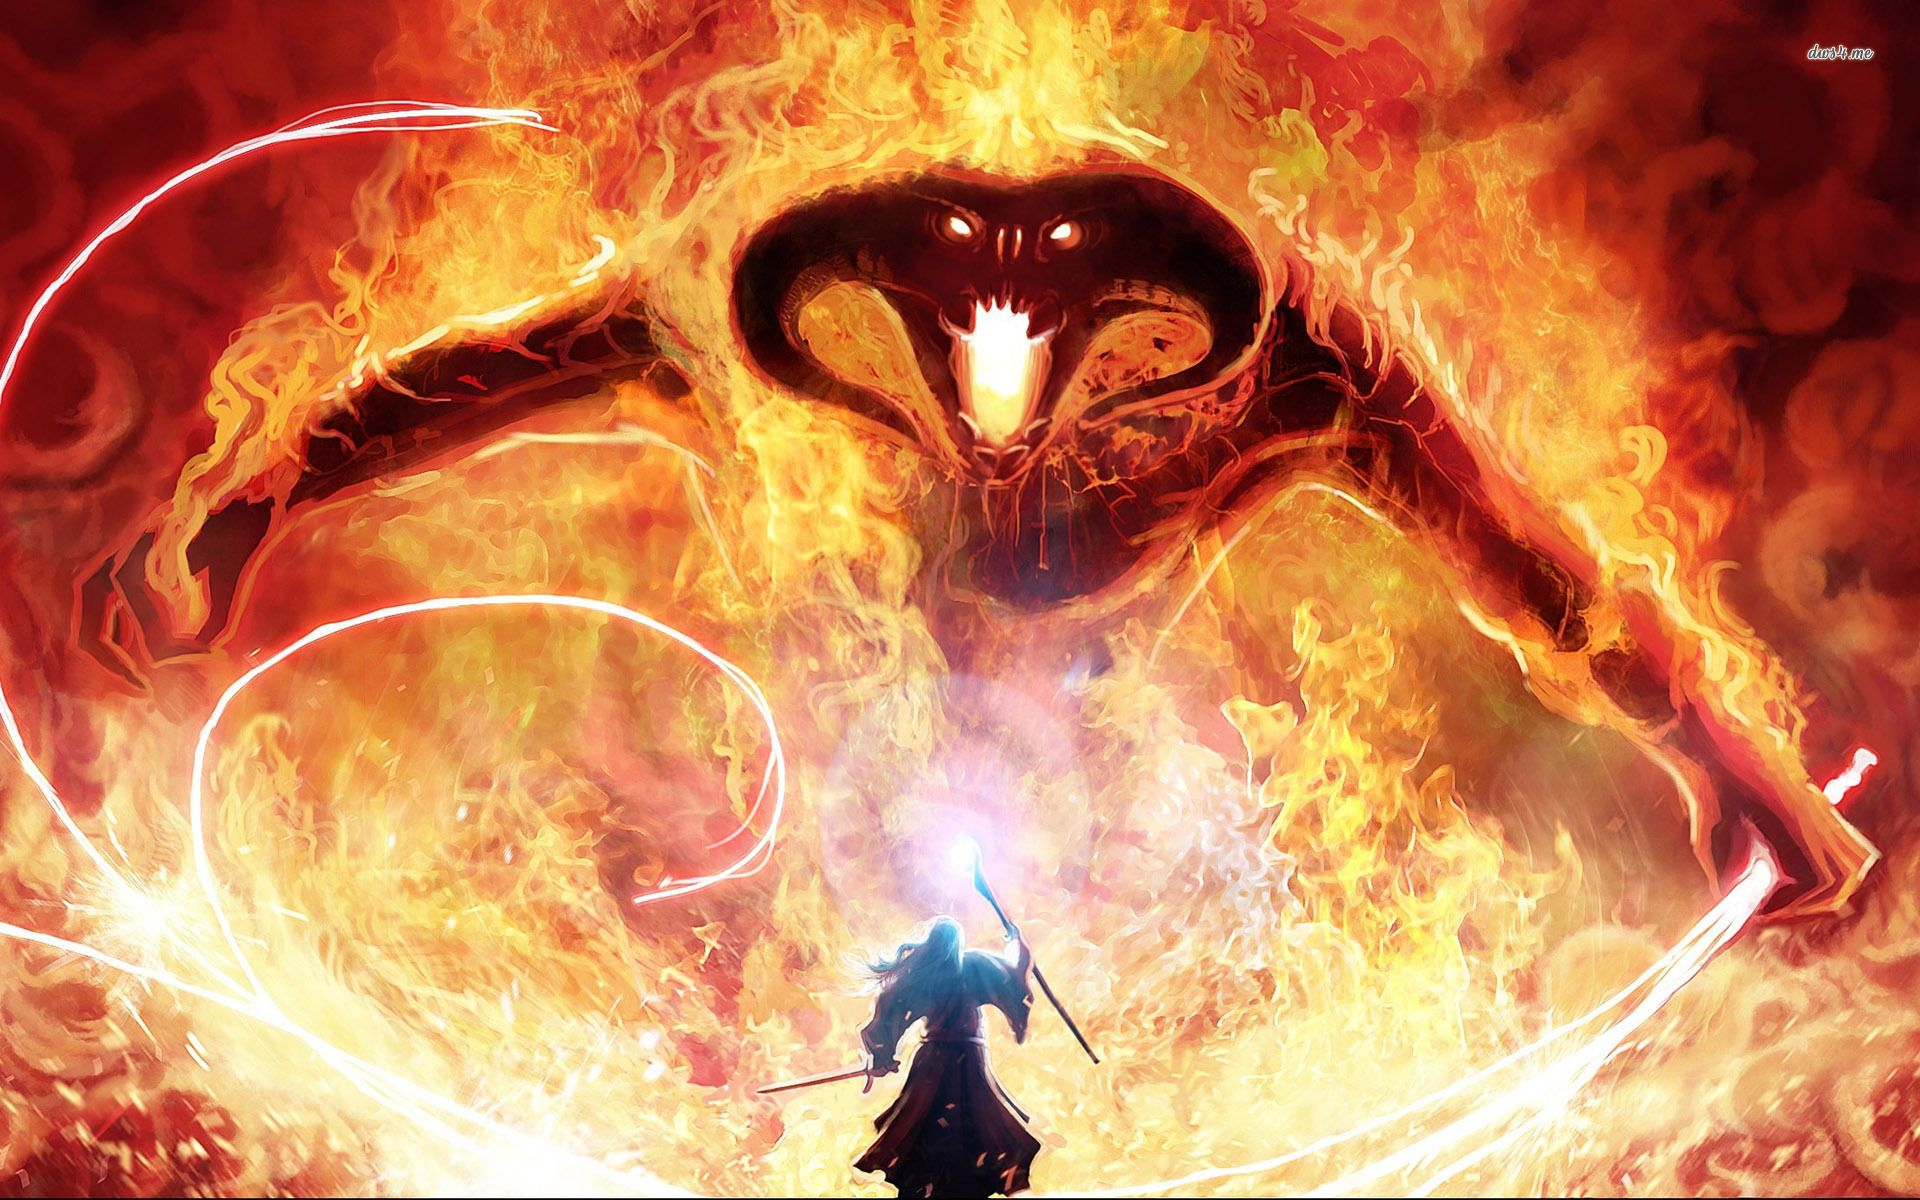 Balrog - Lord of the Rings